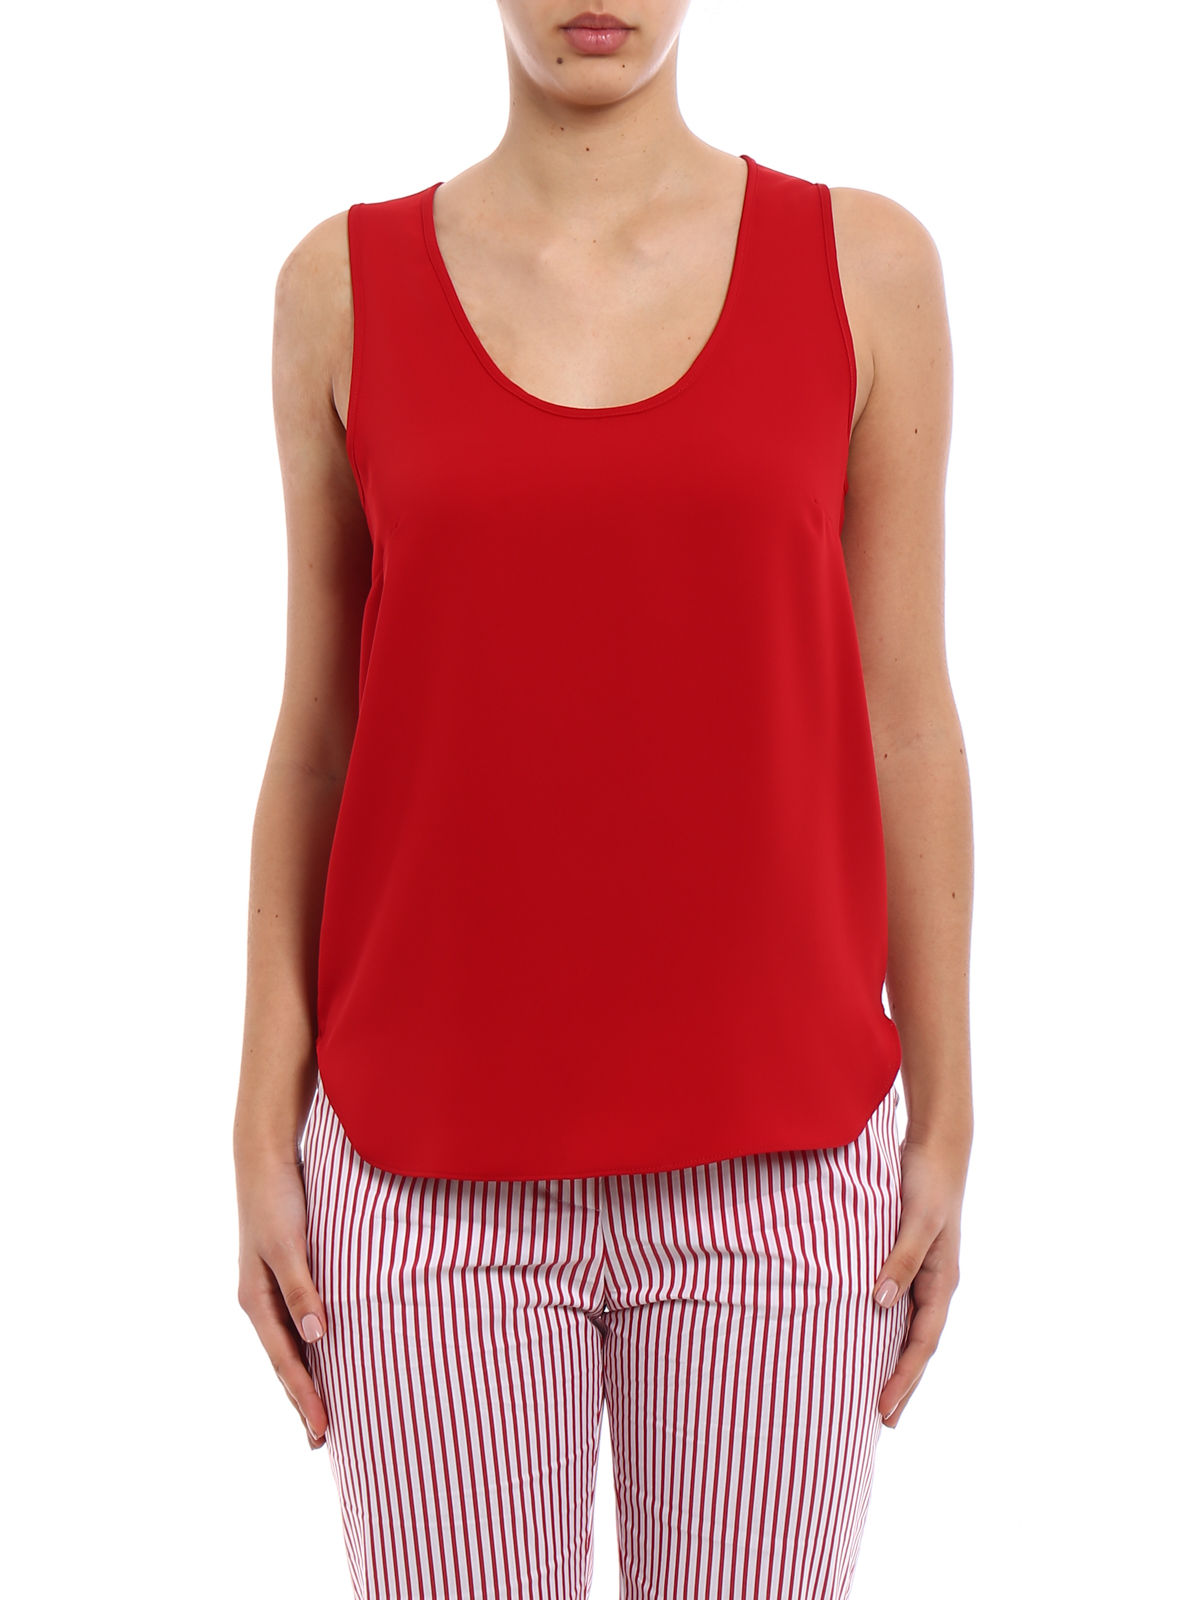 round neck tank top - Red P.A.R.O.S.H. Discount Choice MC1fe3520t